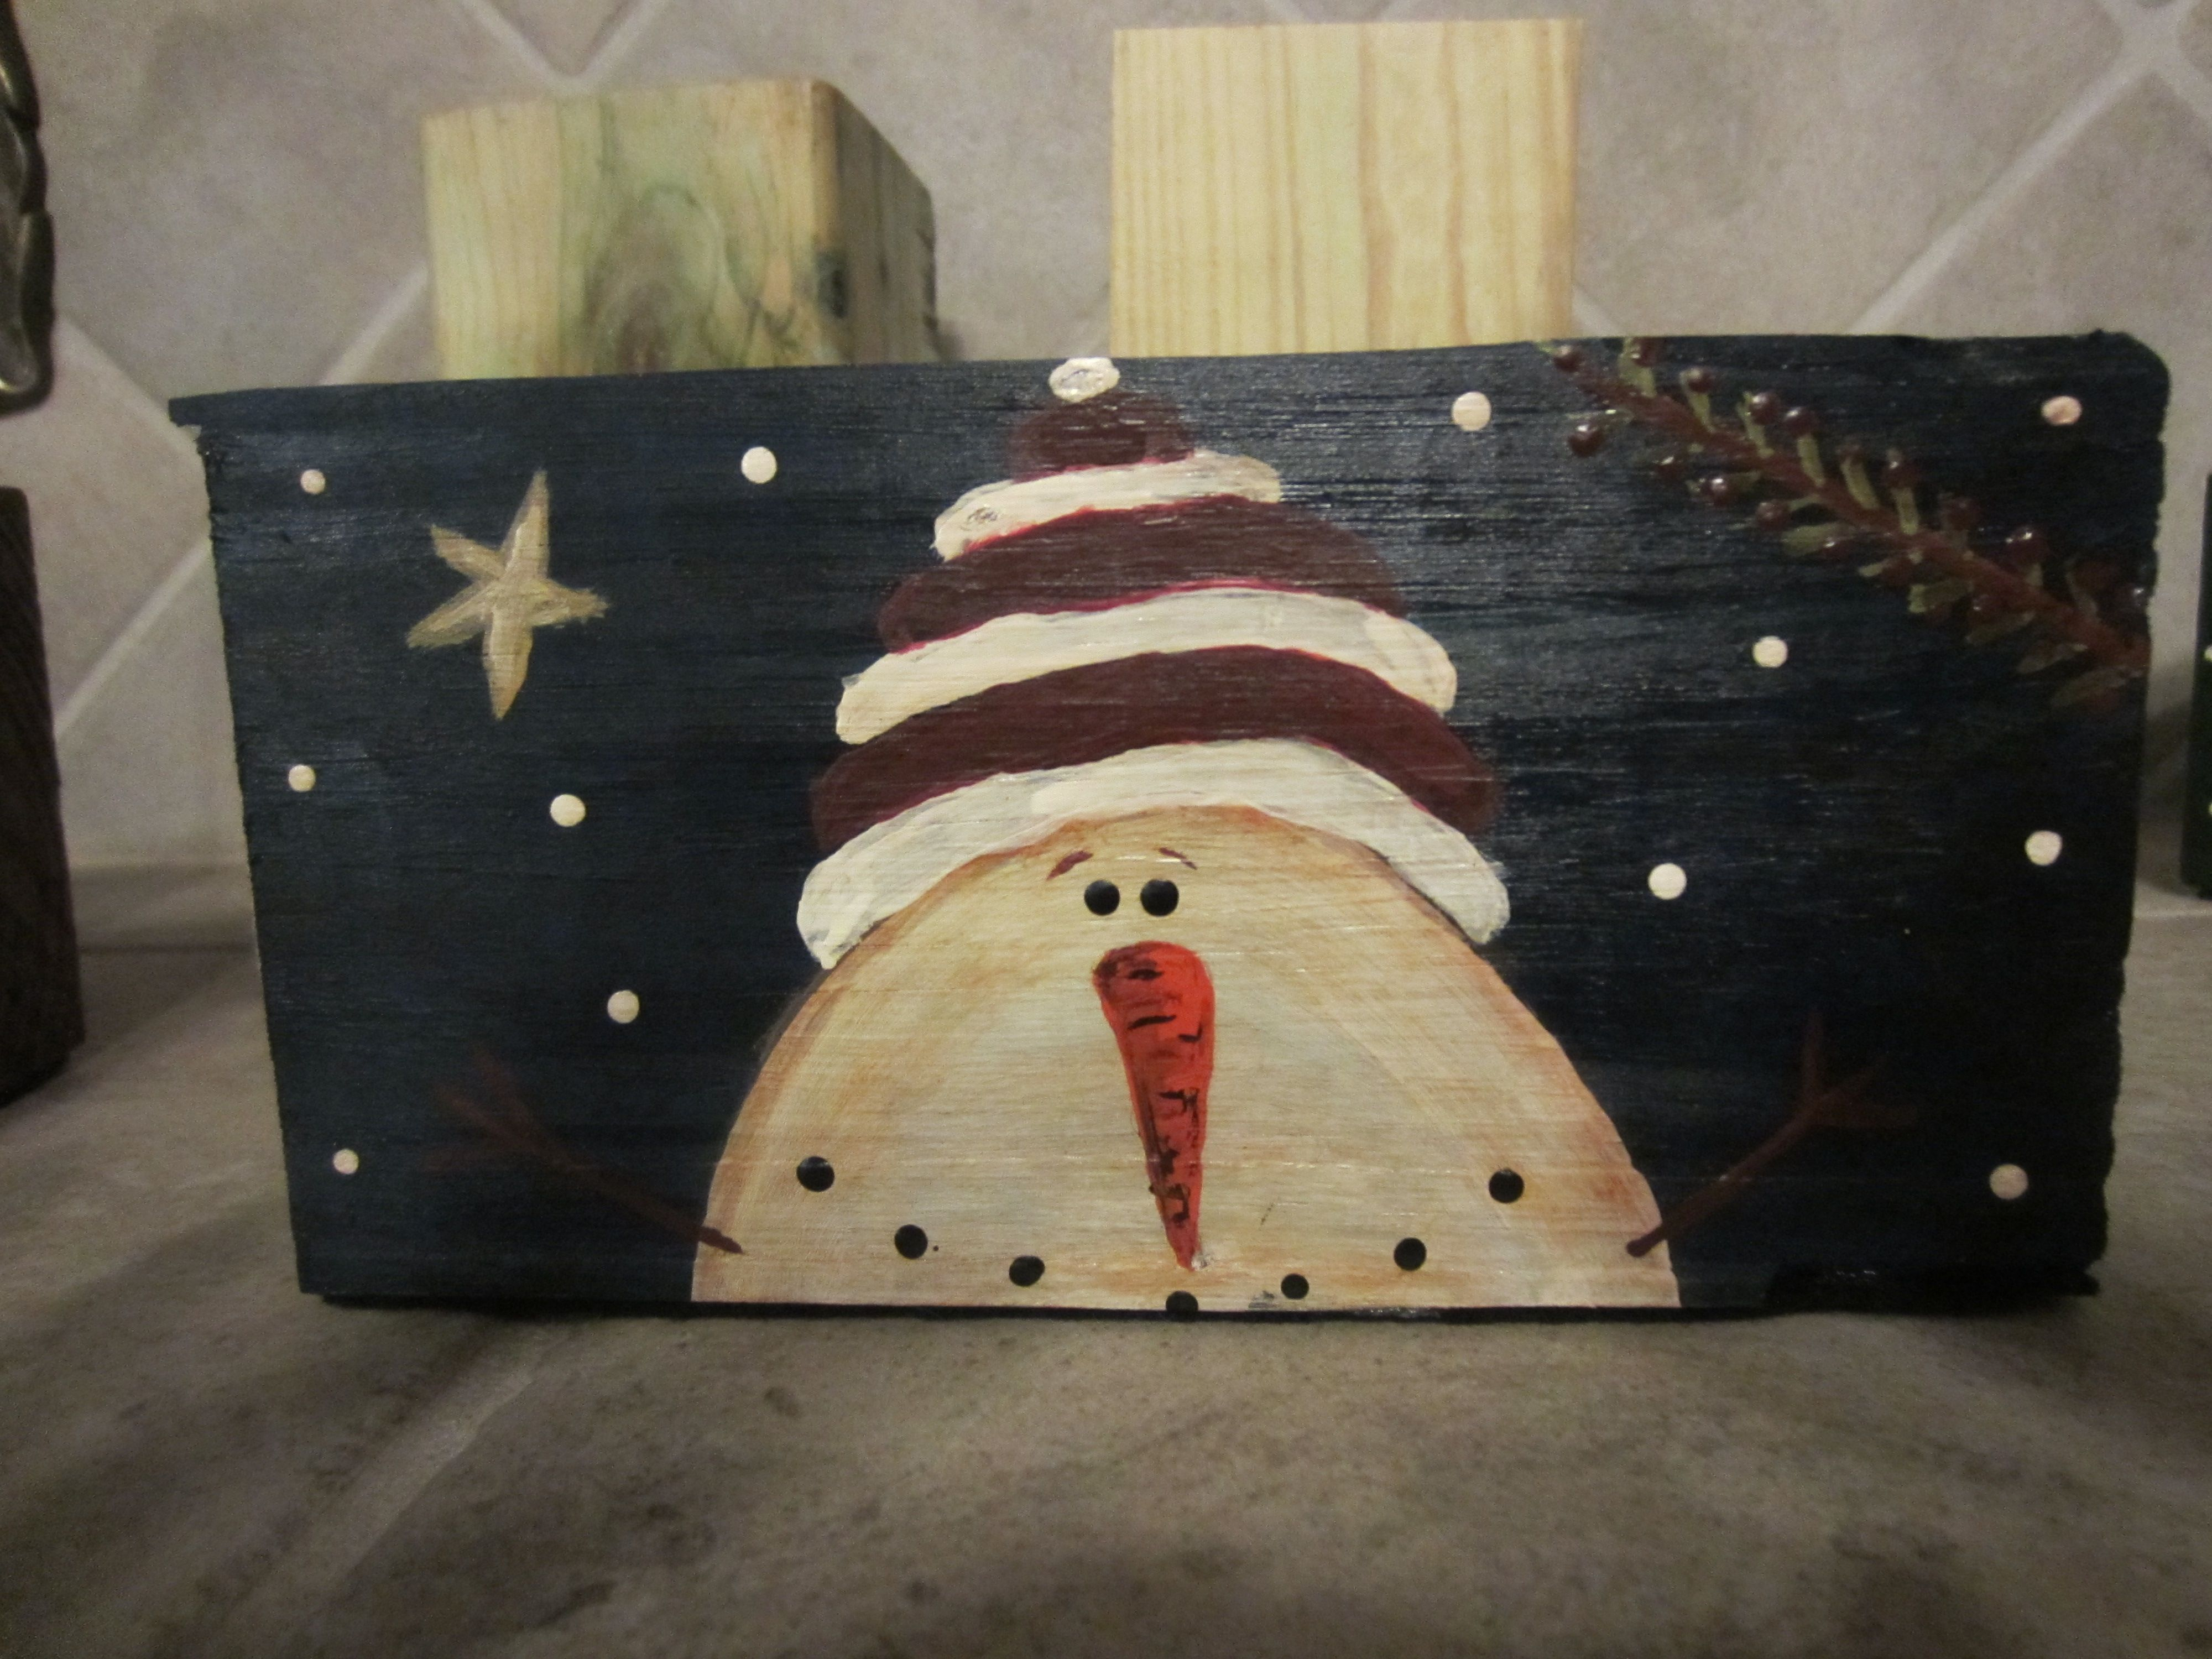 4x4 Wood Crafts Snowman Painted On A Scrape Piece Of 4x4 Wood Crafts